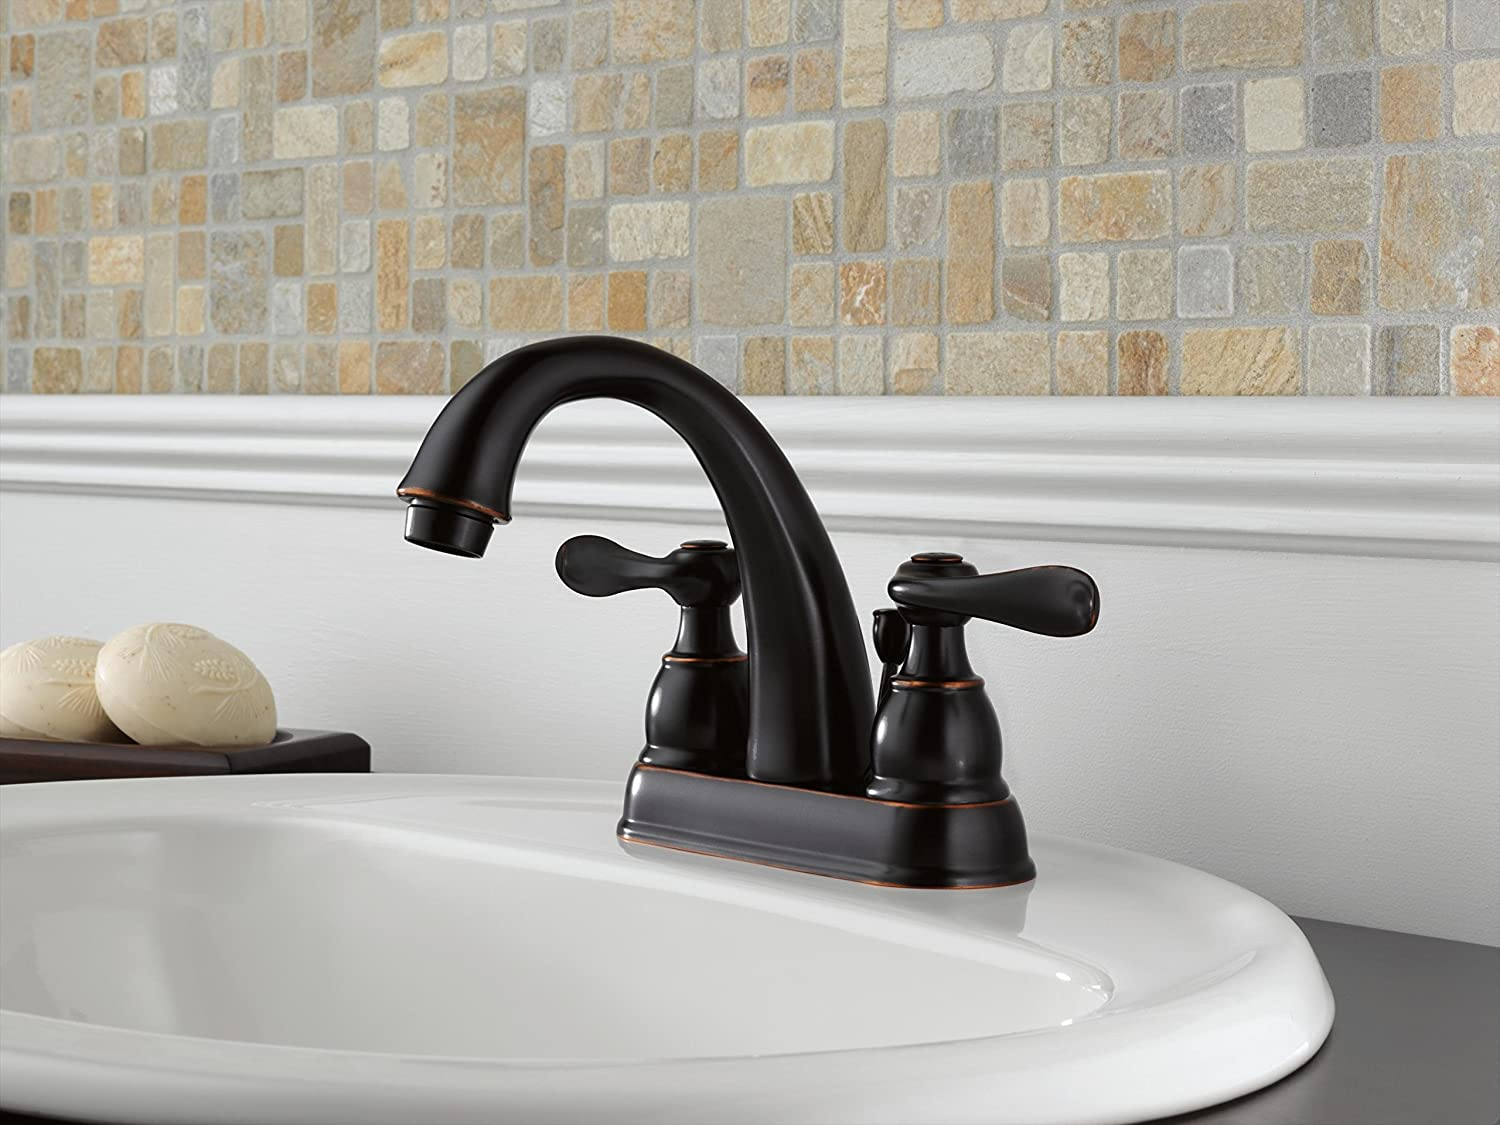 bronze faucet oil in bathroom kohler p devonshire k low rubbed widespread handle sink faucets arc